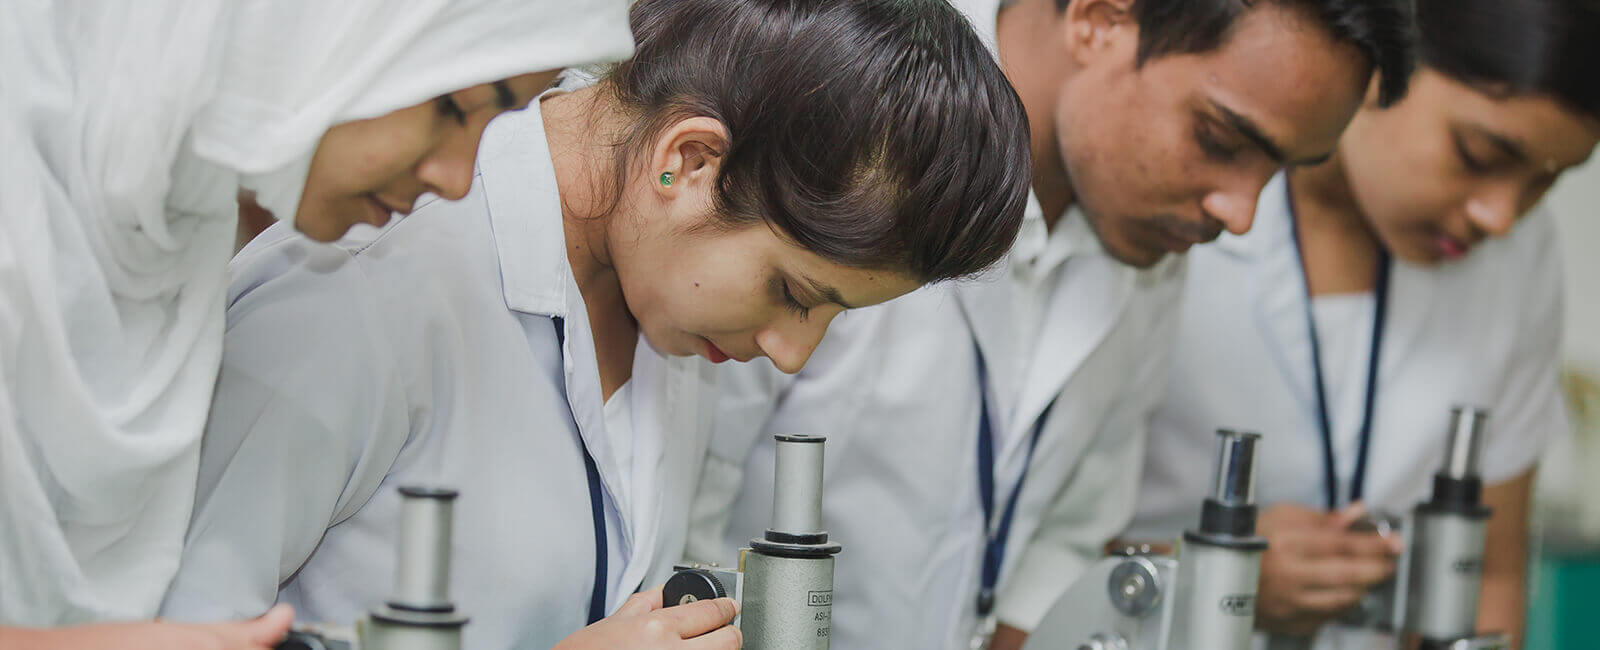 BSc nursing colleges in North Bangalore India